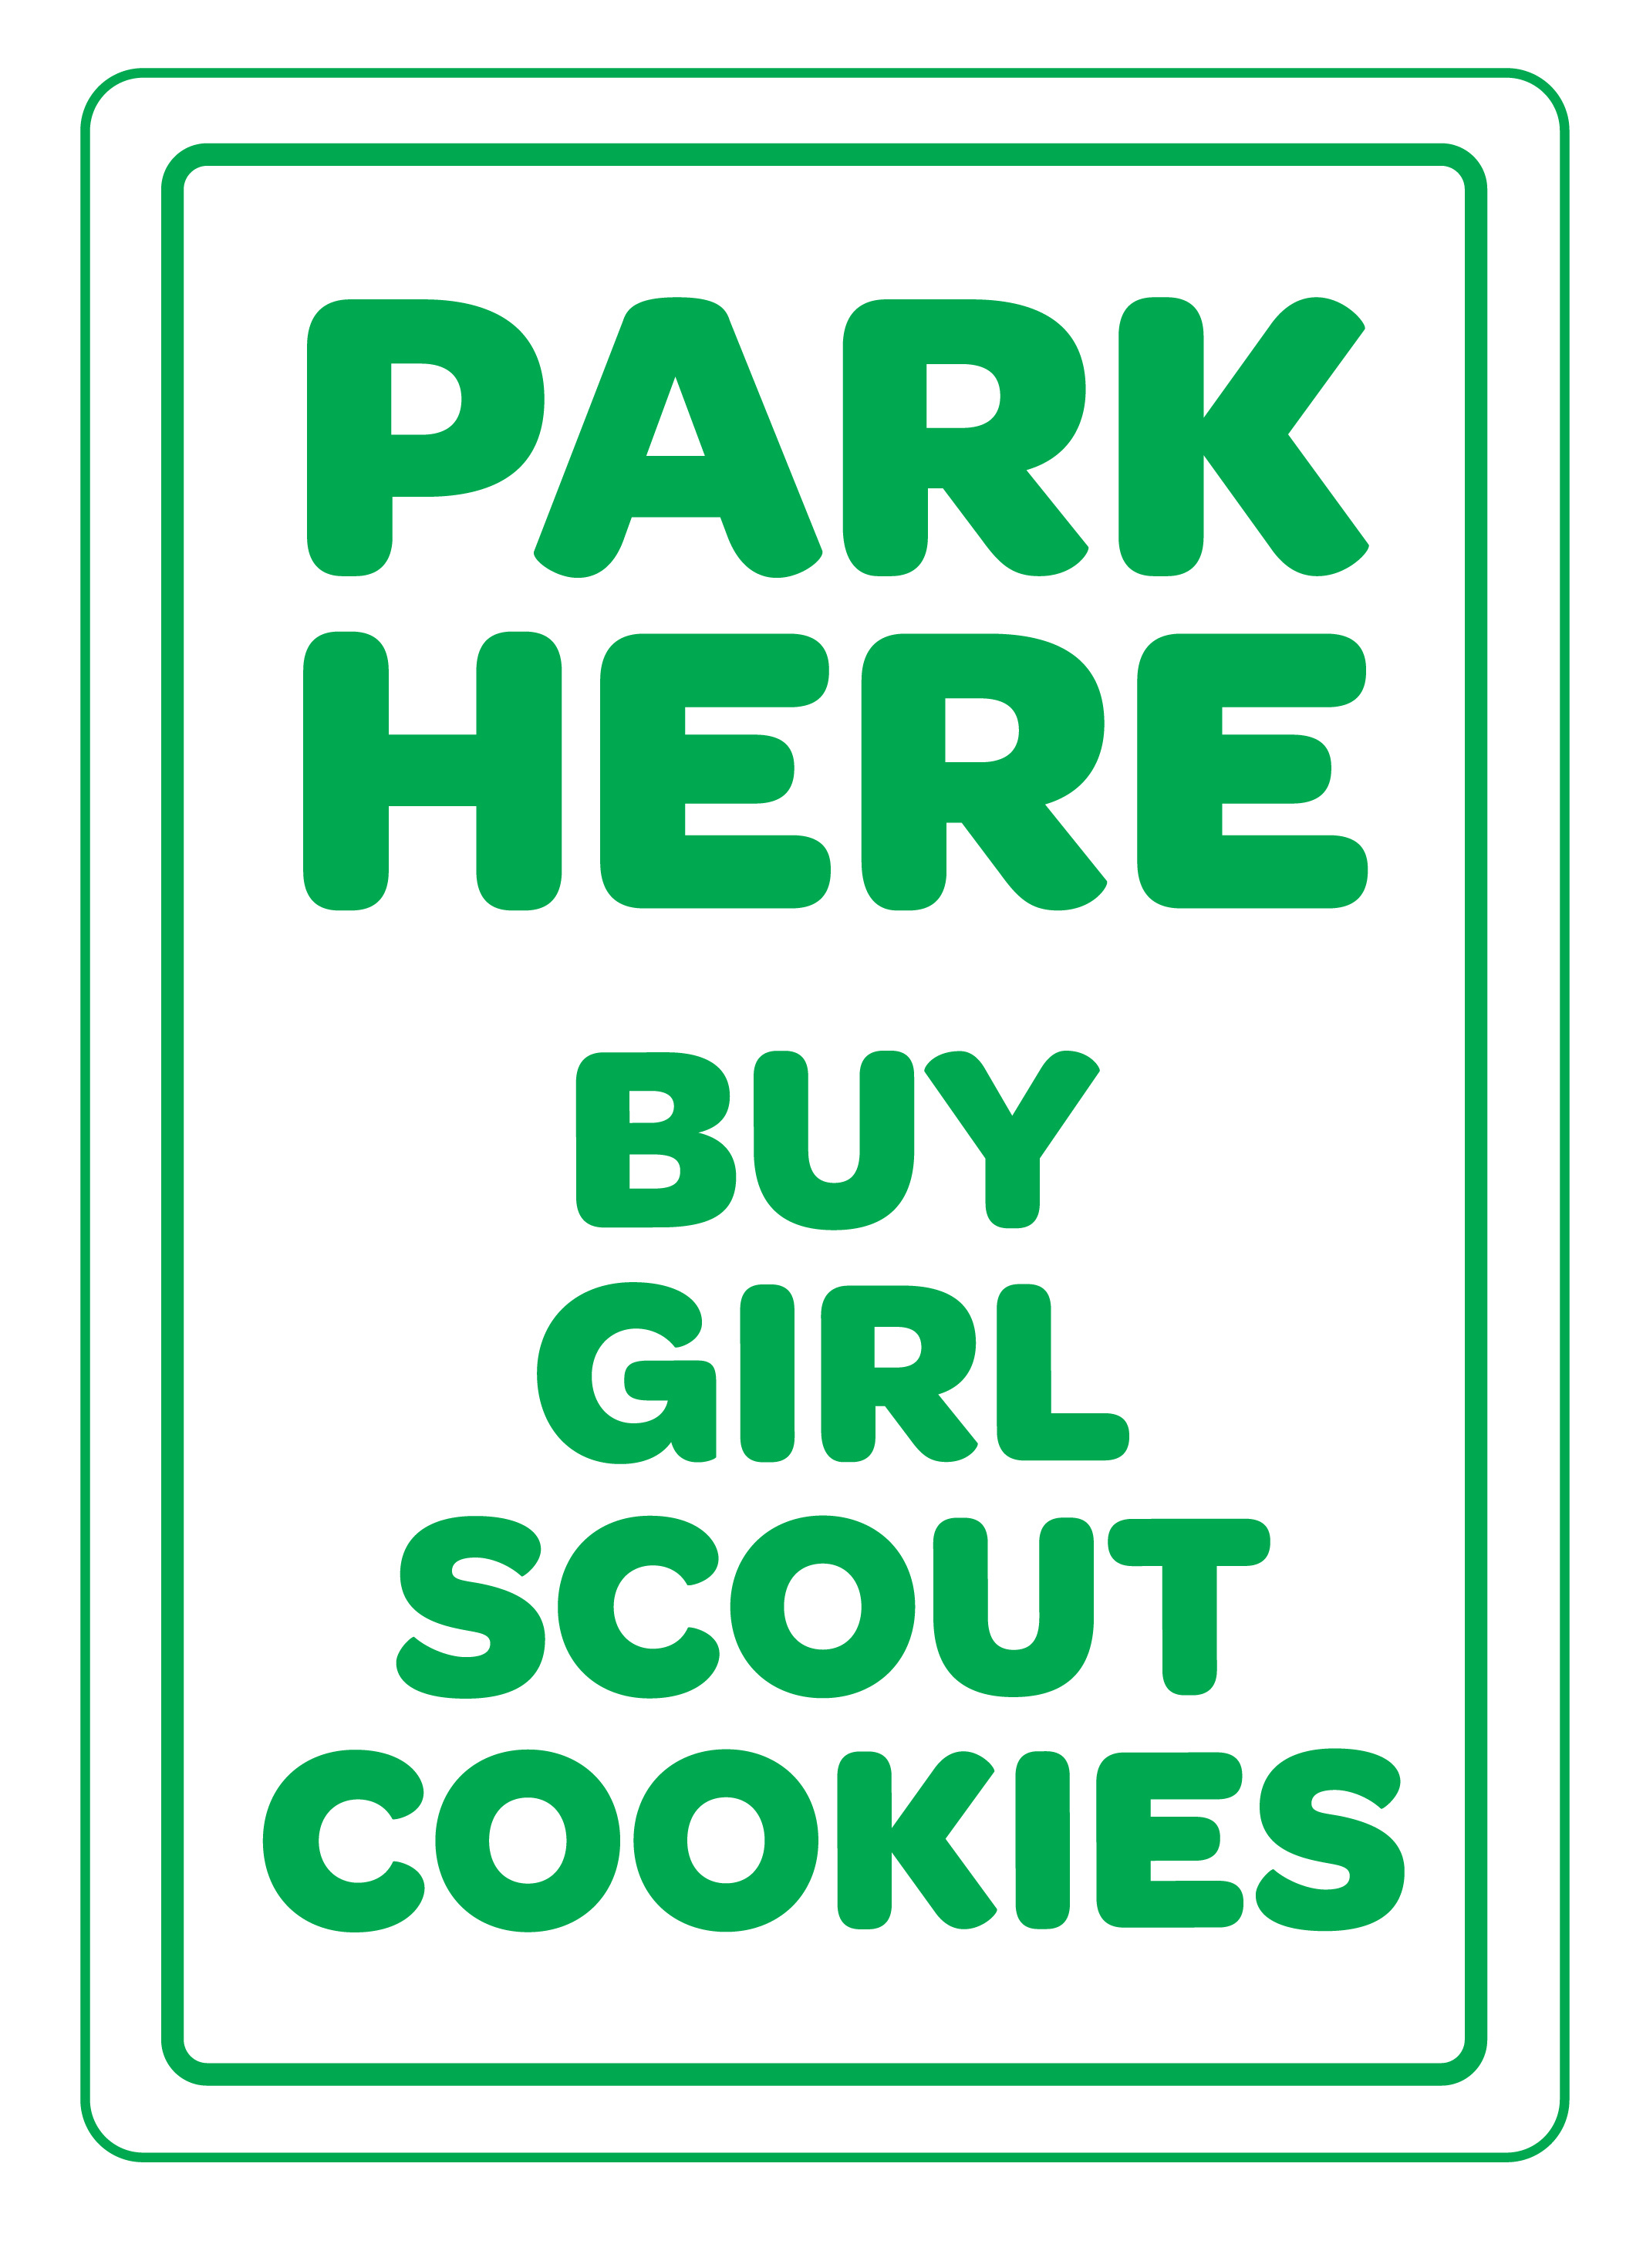 Girl scouts of the colonial coast cookie forms clipart 2